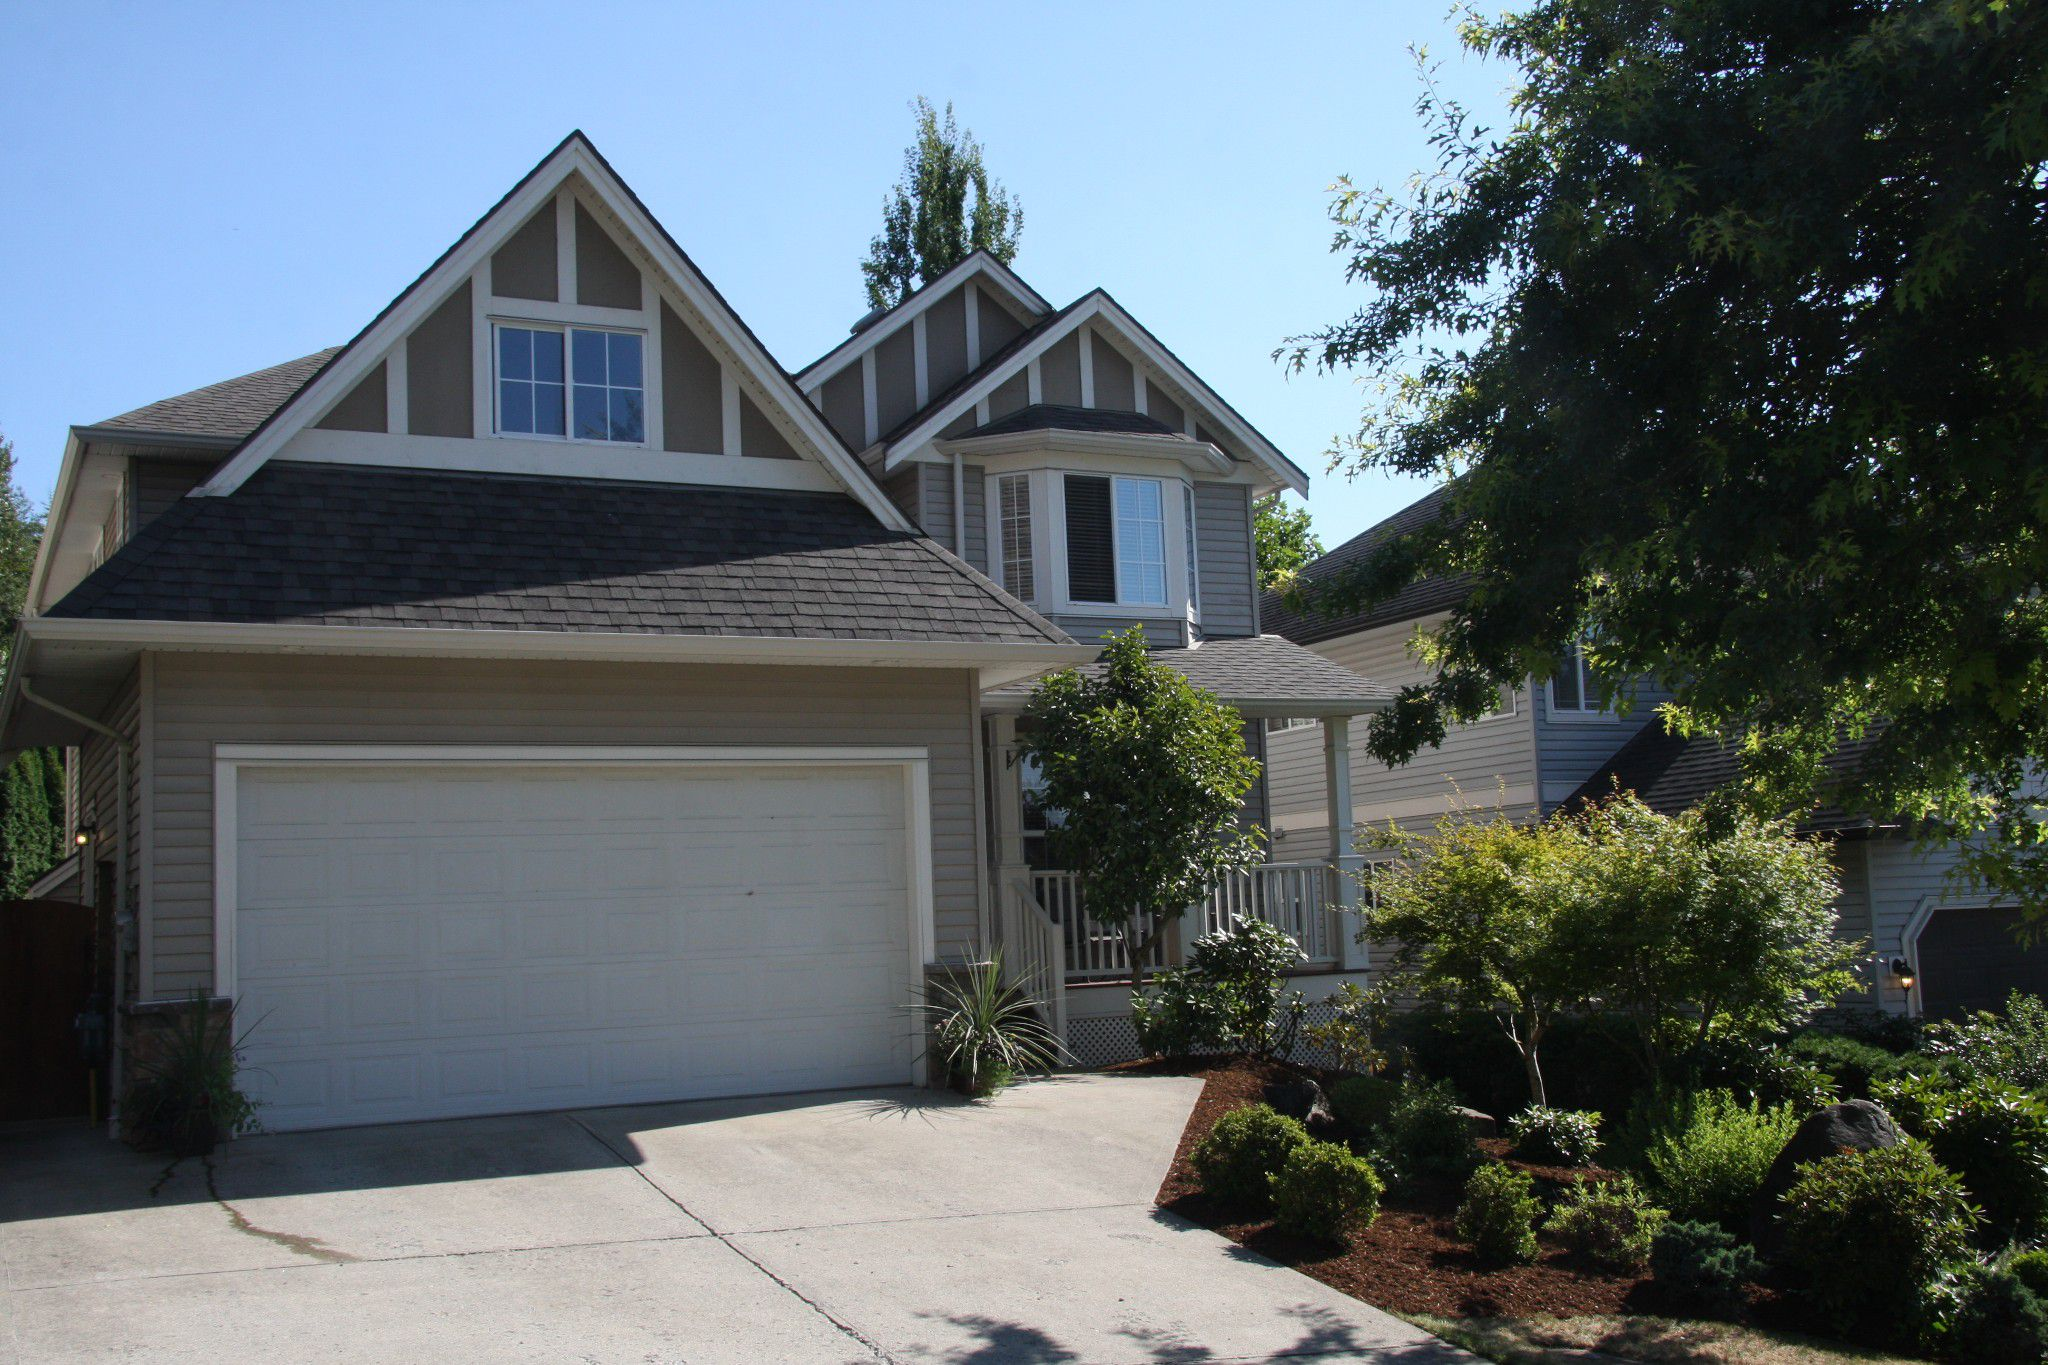 Main Photo: 35362 Firdale Avenue in Abbotsford: Abbotsford East House for sale : MLS®# R2306648